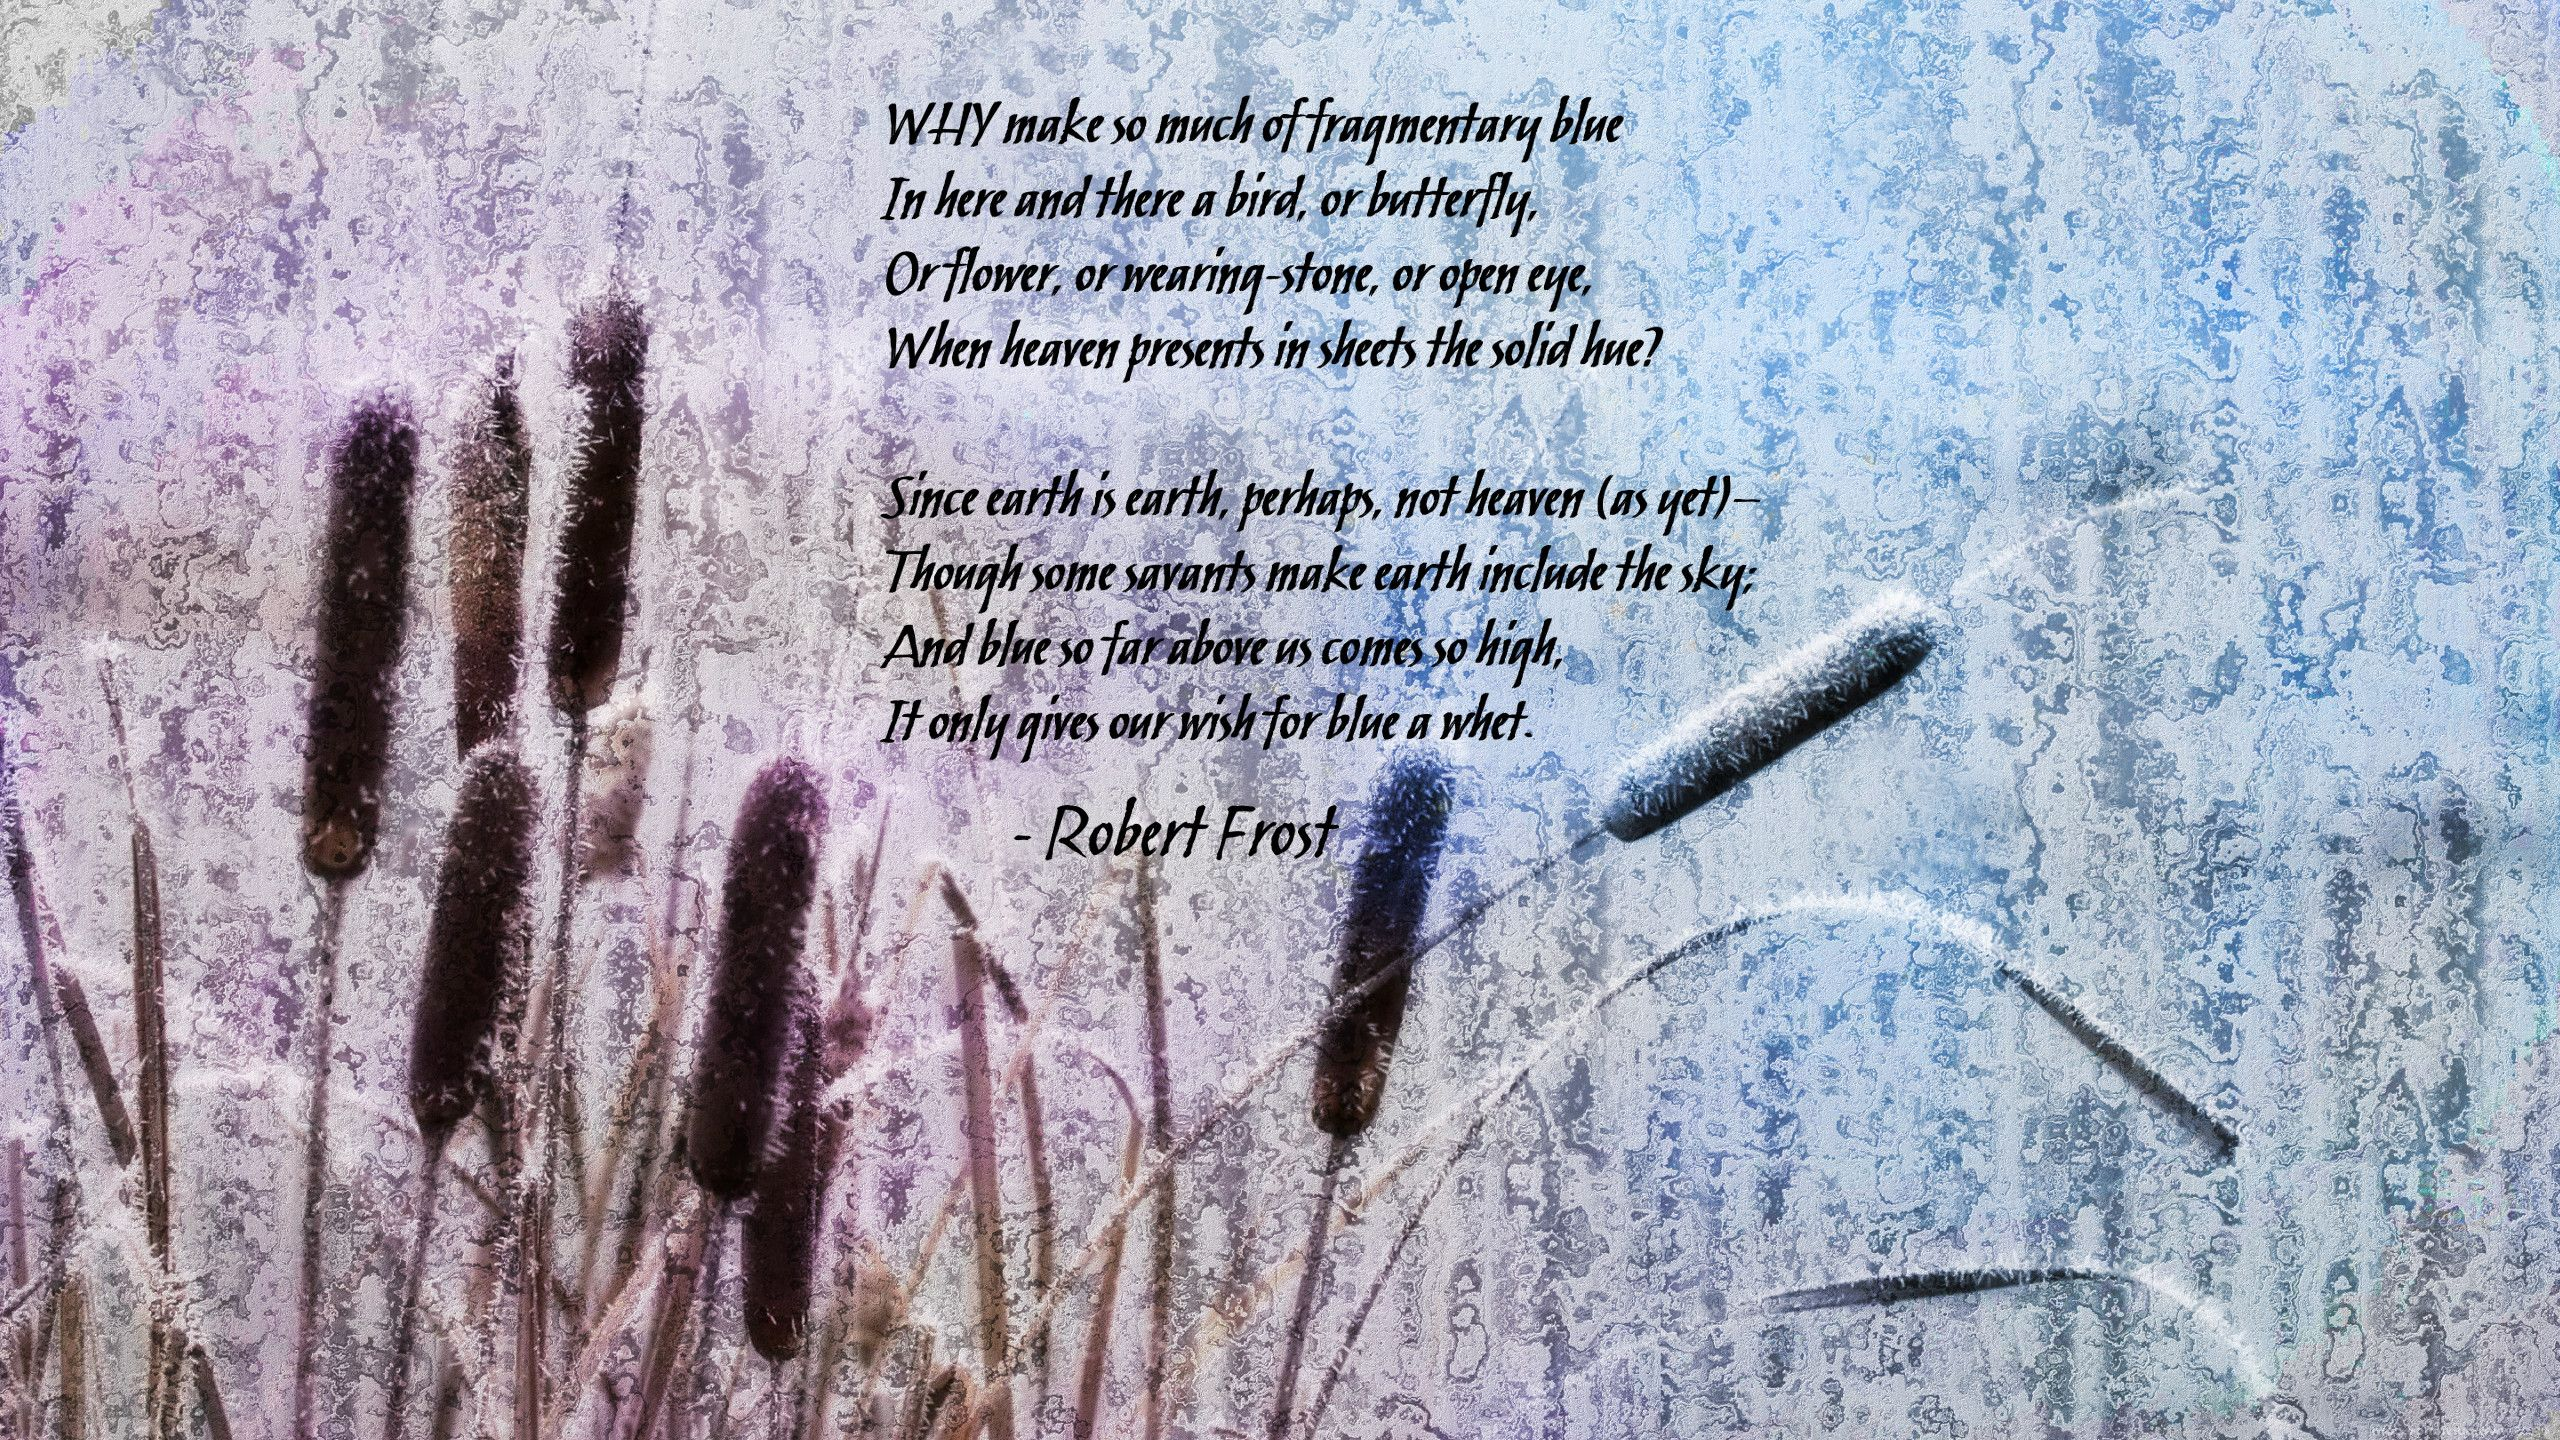 """essays on taking online classes """"Mending Wall"""" by Robert Frost"""